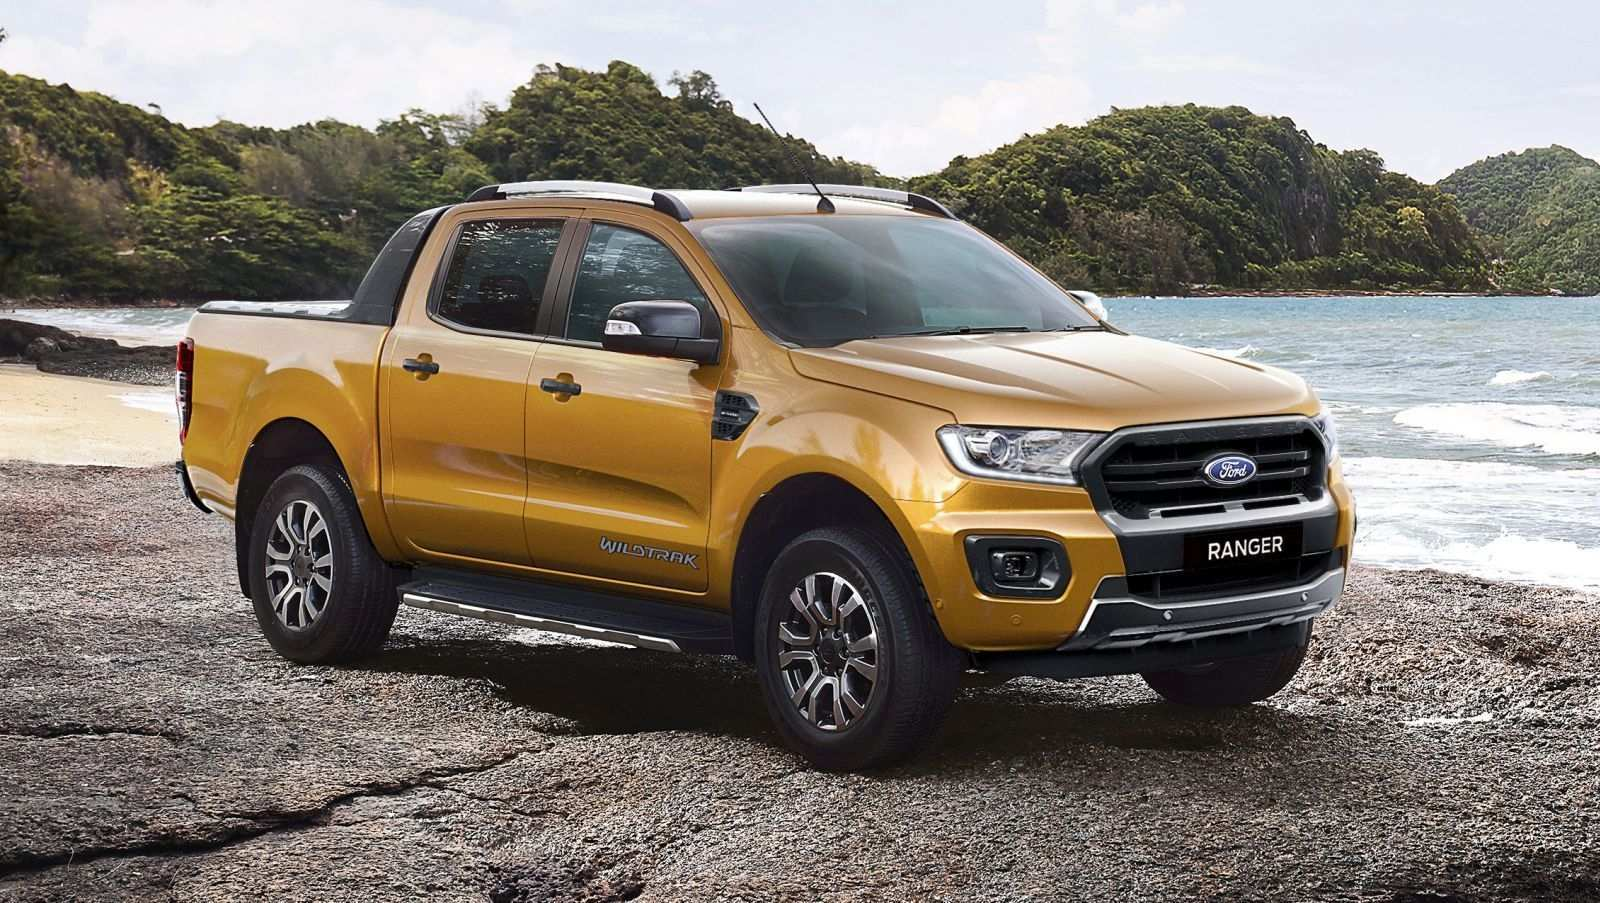 54 Best Review Best Ford Wildtrak 2019 Release Date Performance by Best Ford Wildtrak 2019 Release Date